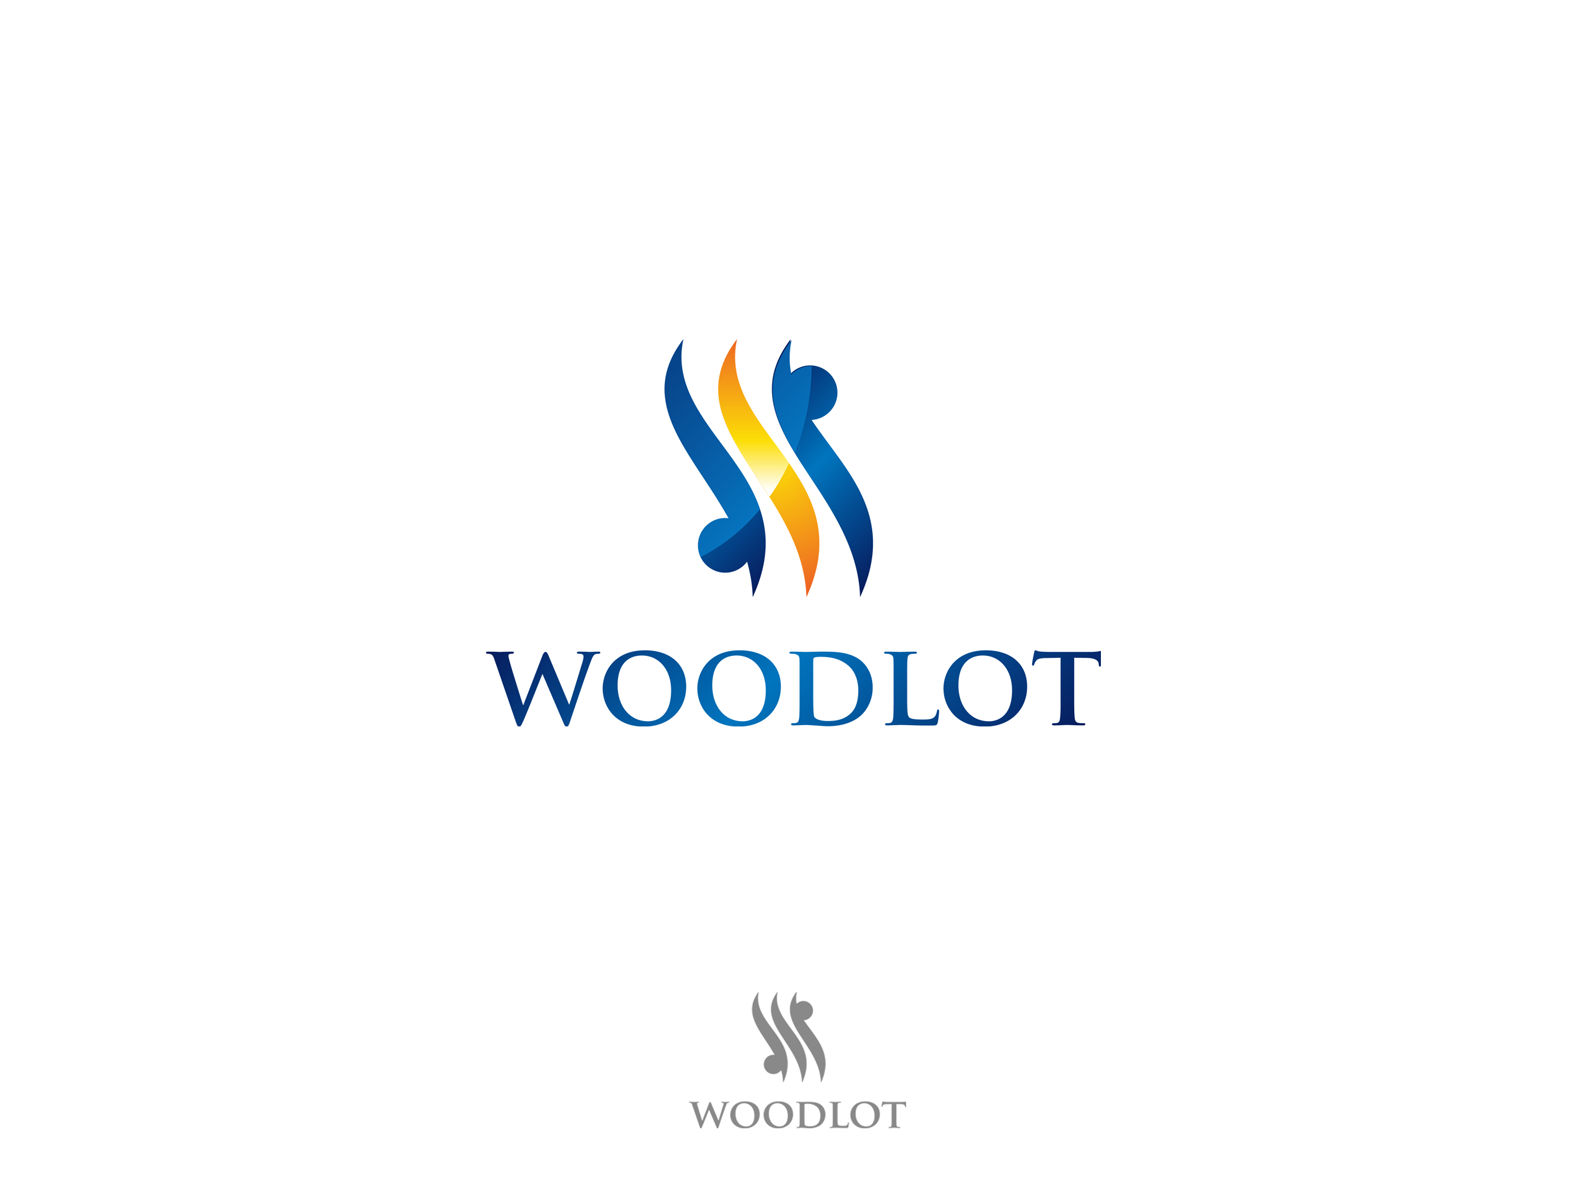 Logo Design by Alex Chandra - Entry No. 67 in the Logo Design Contest Fun Logo Design for woodlot.